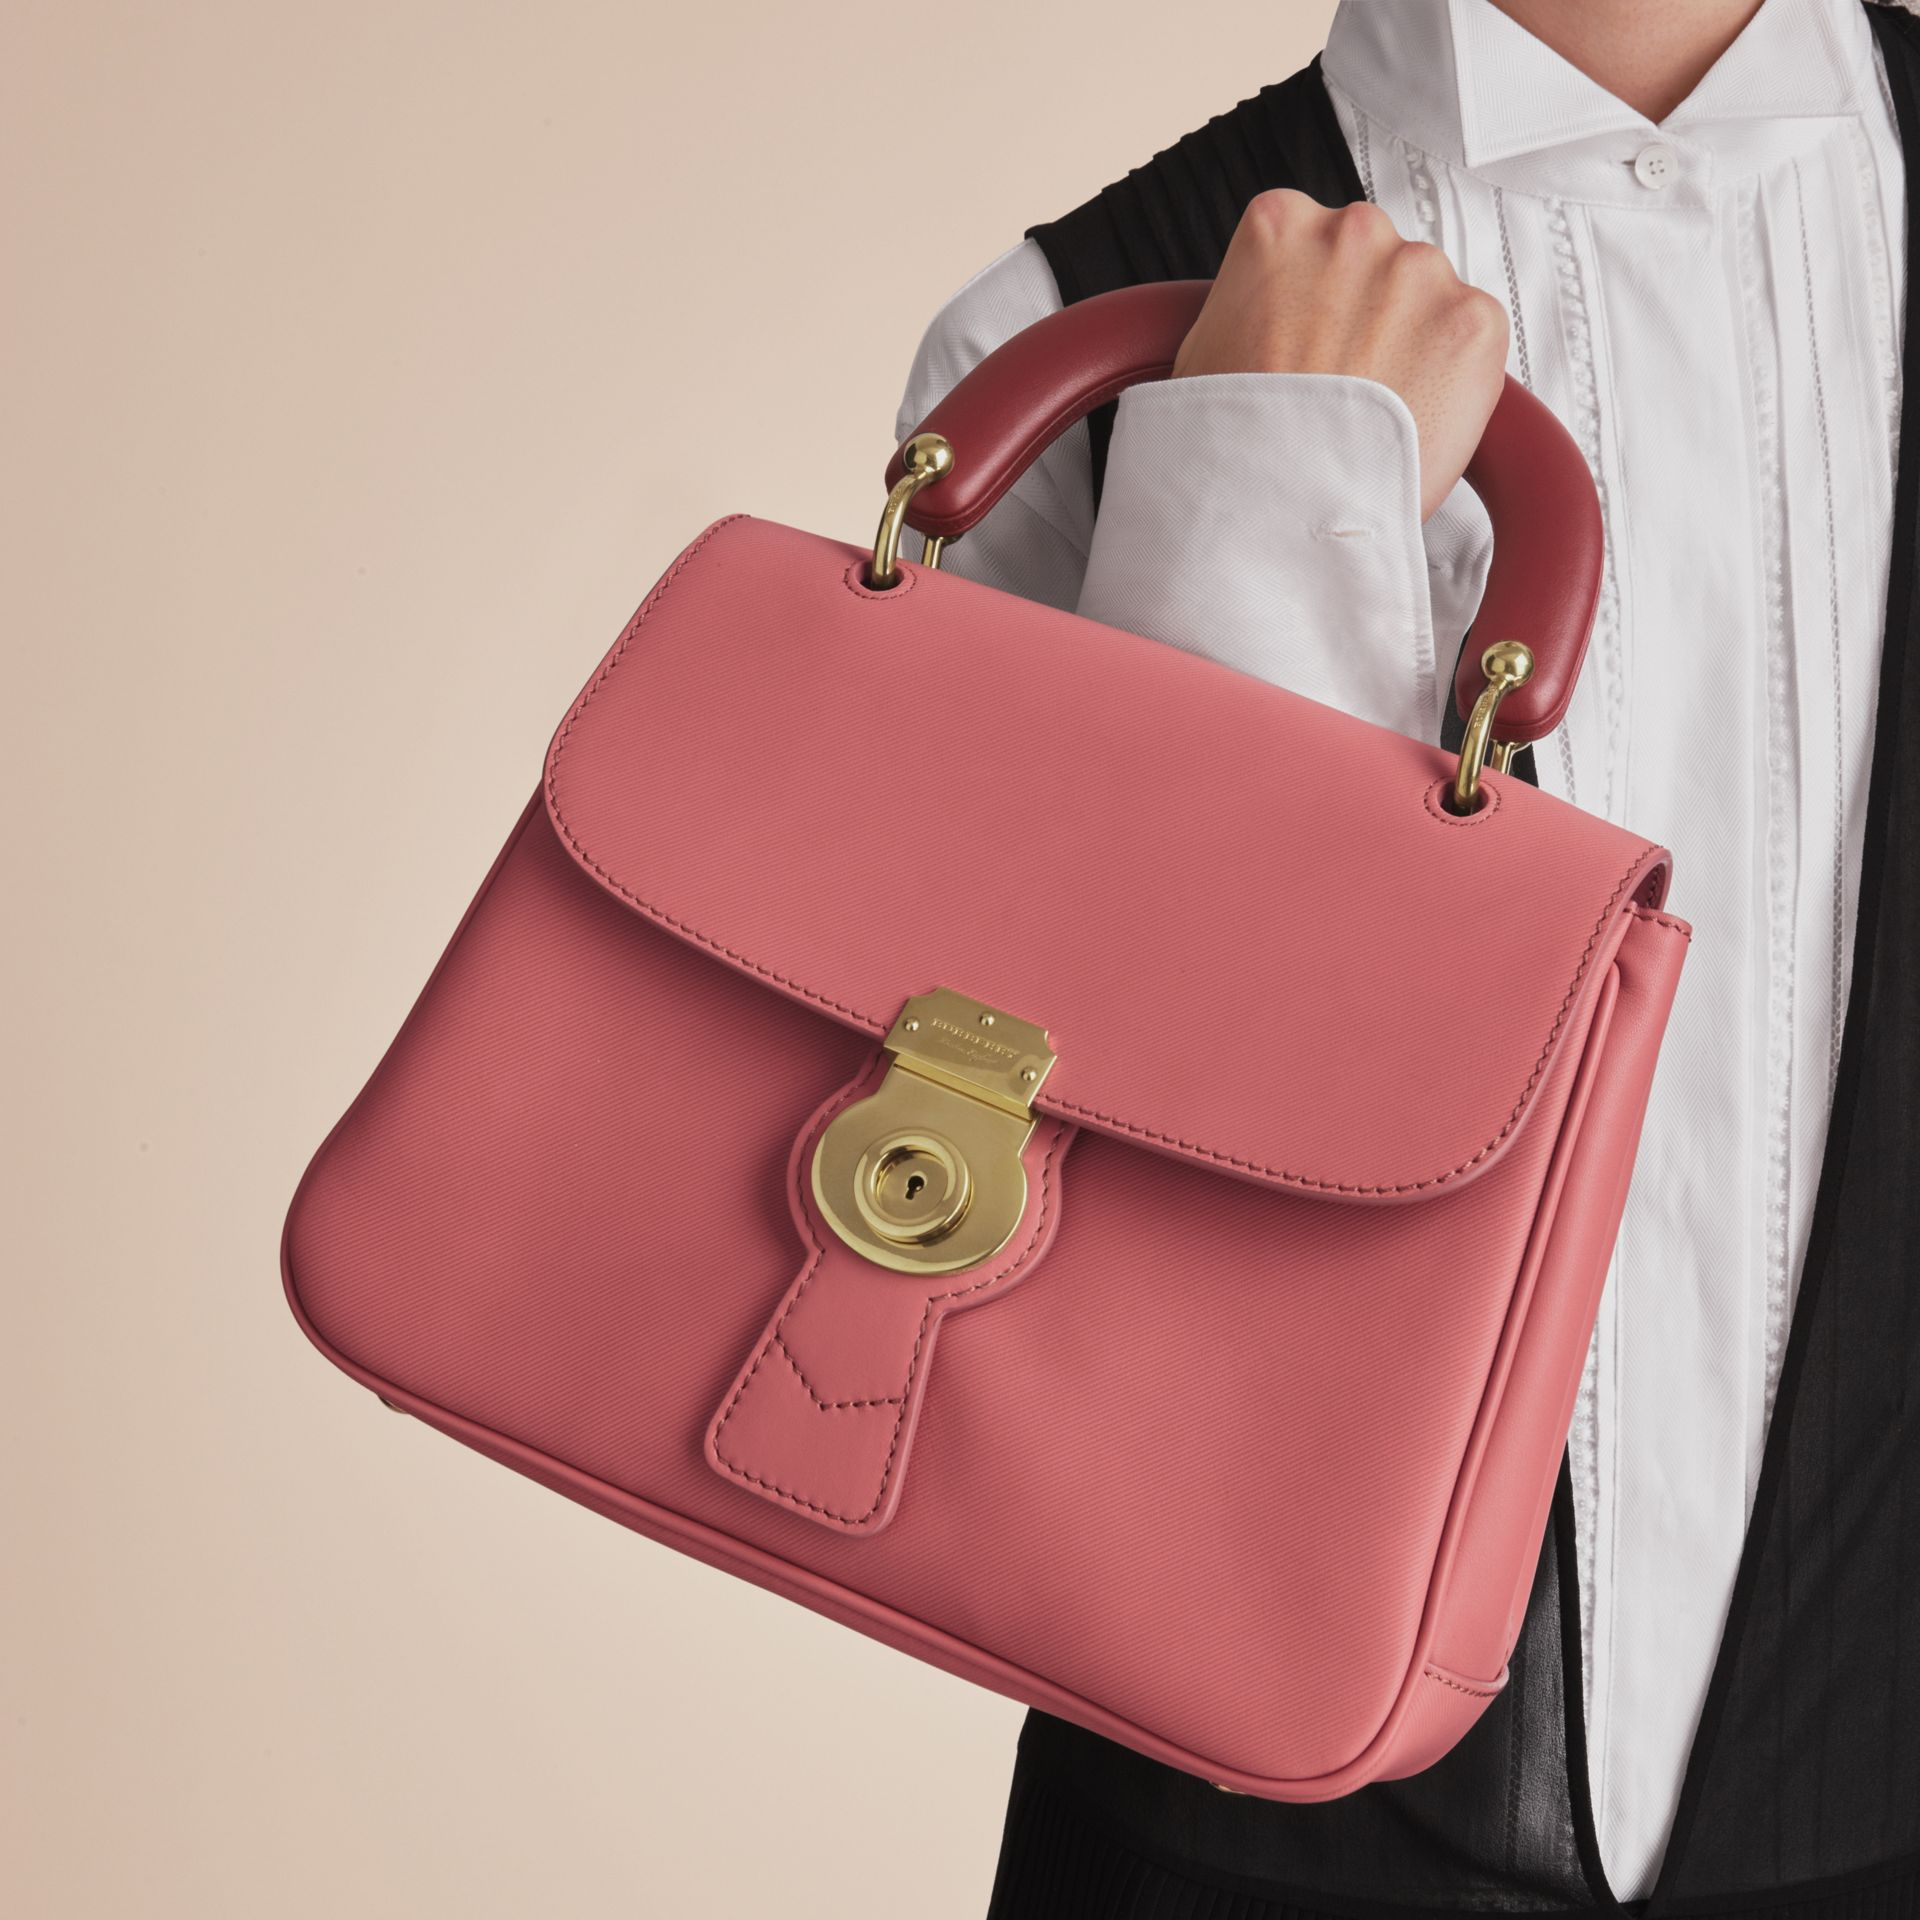 The Medium DK88 Top Handle Bag in Blossom Pink - Women | Burberry United States - gallery image 5